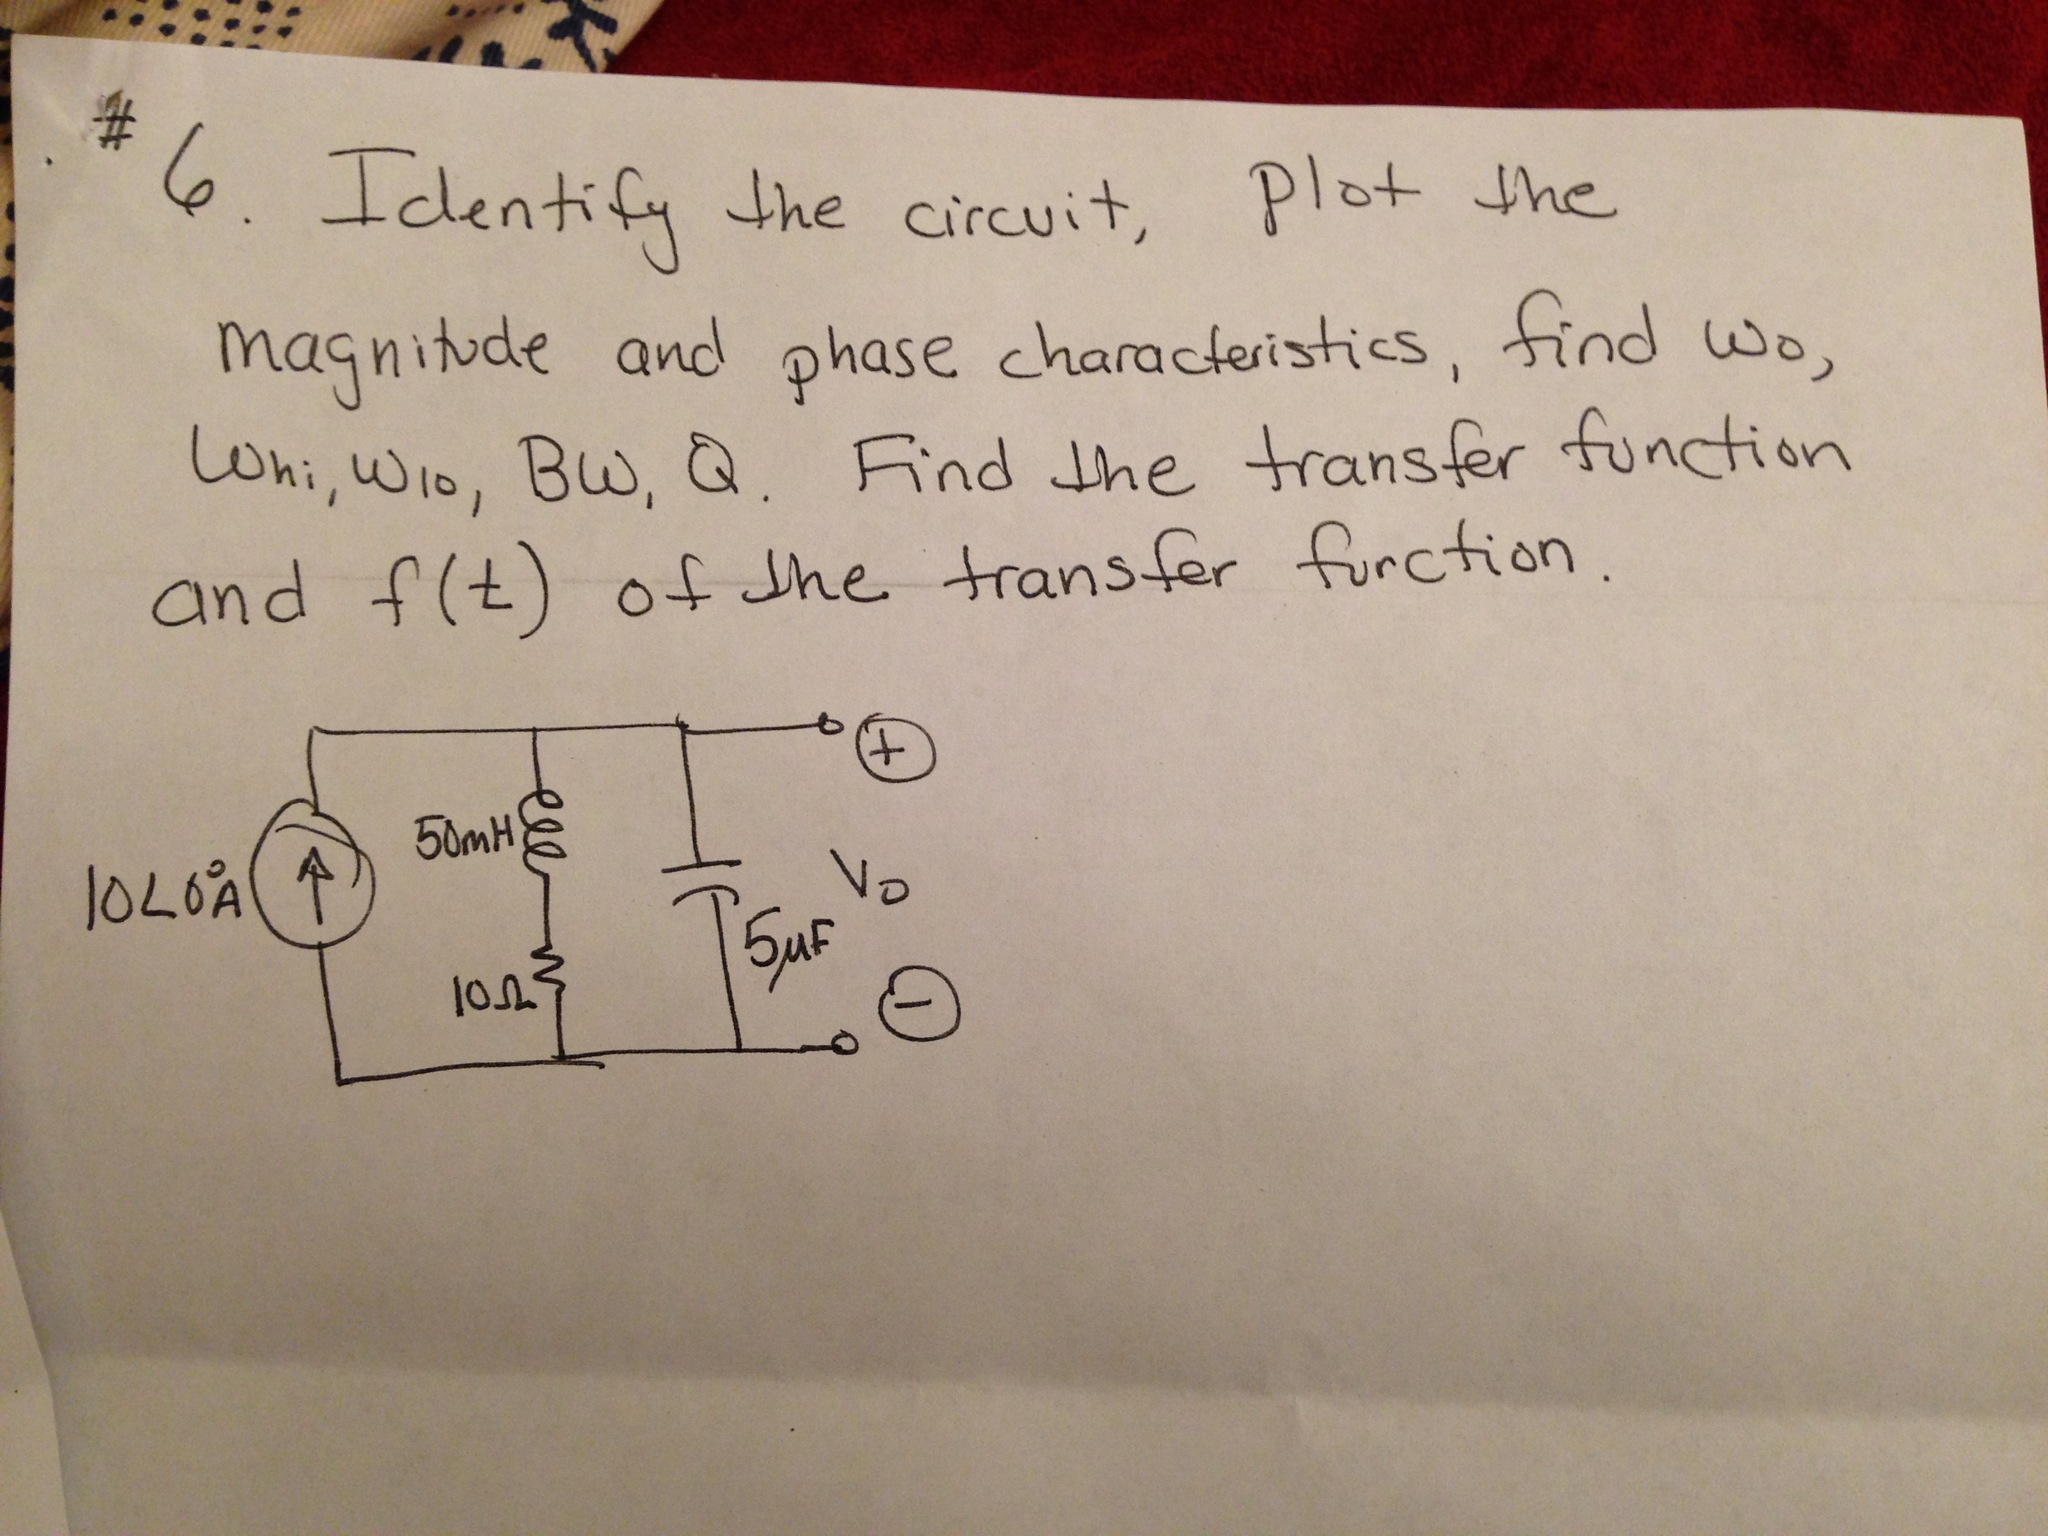 Identify the circuit, plot the magnitude and phase